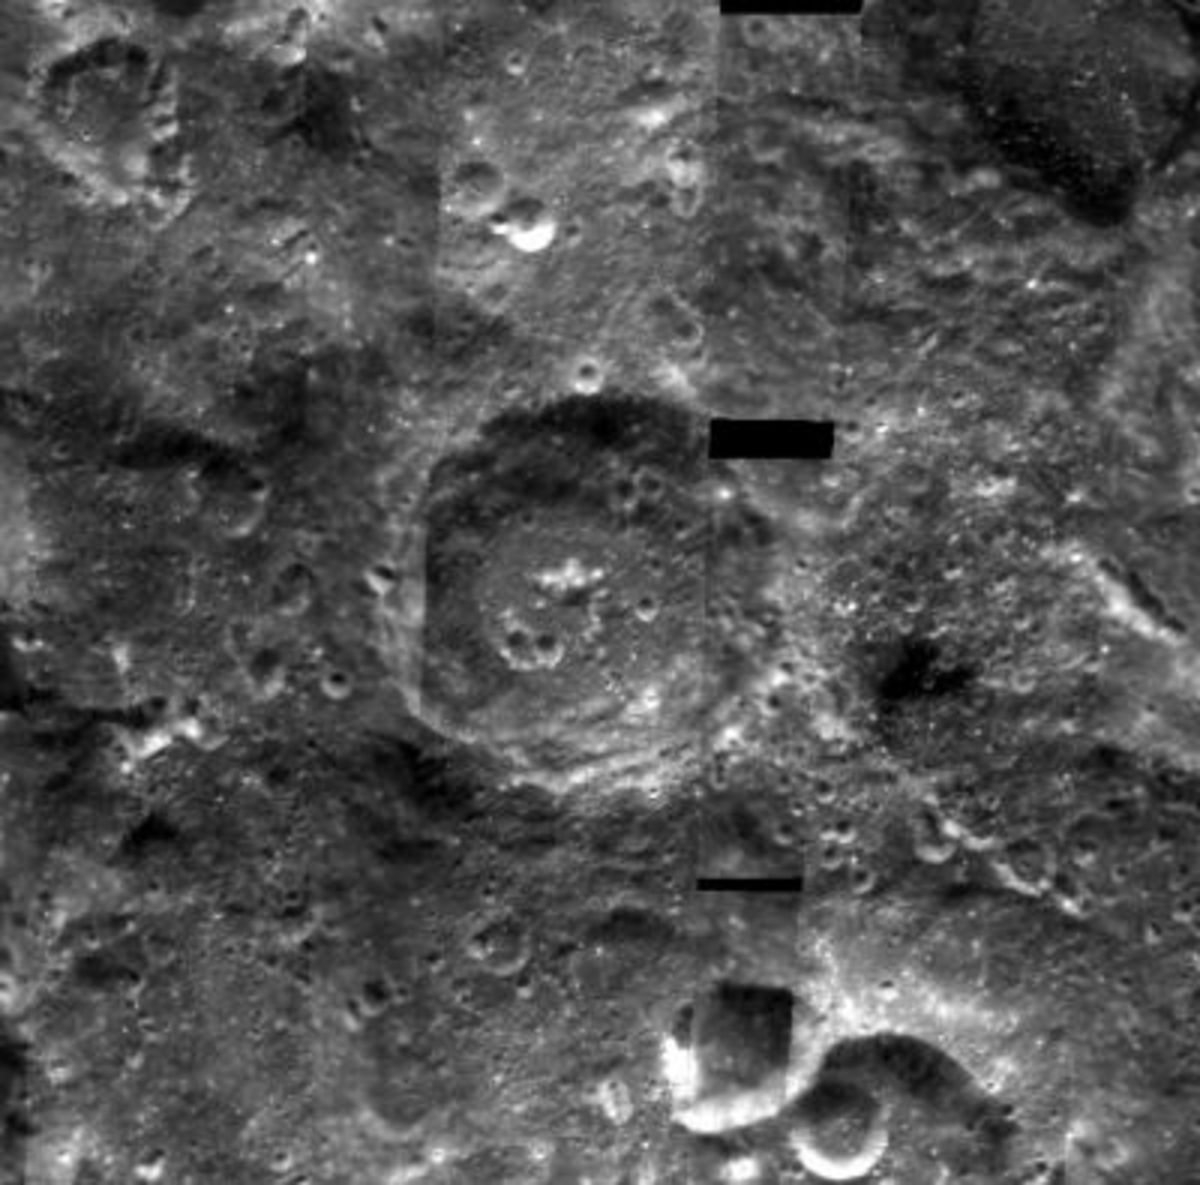 Craters On The Surface